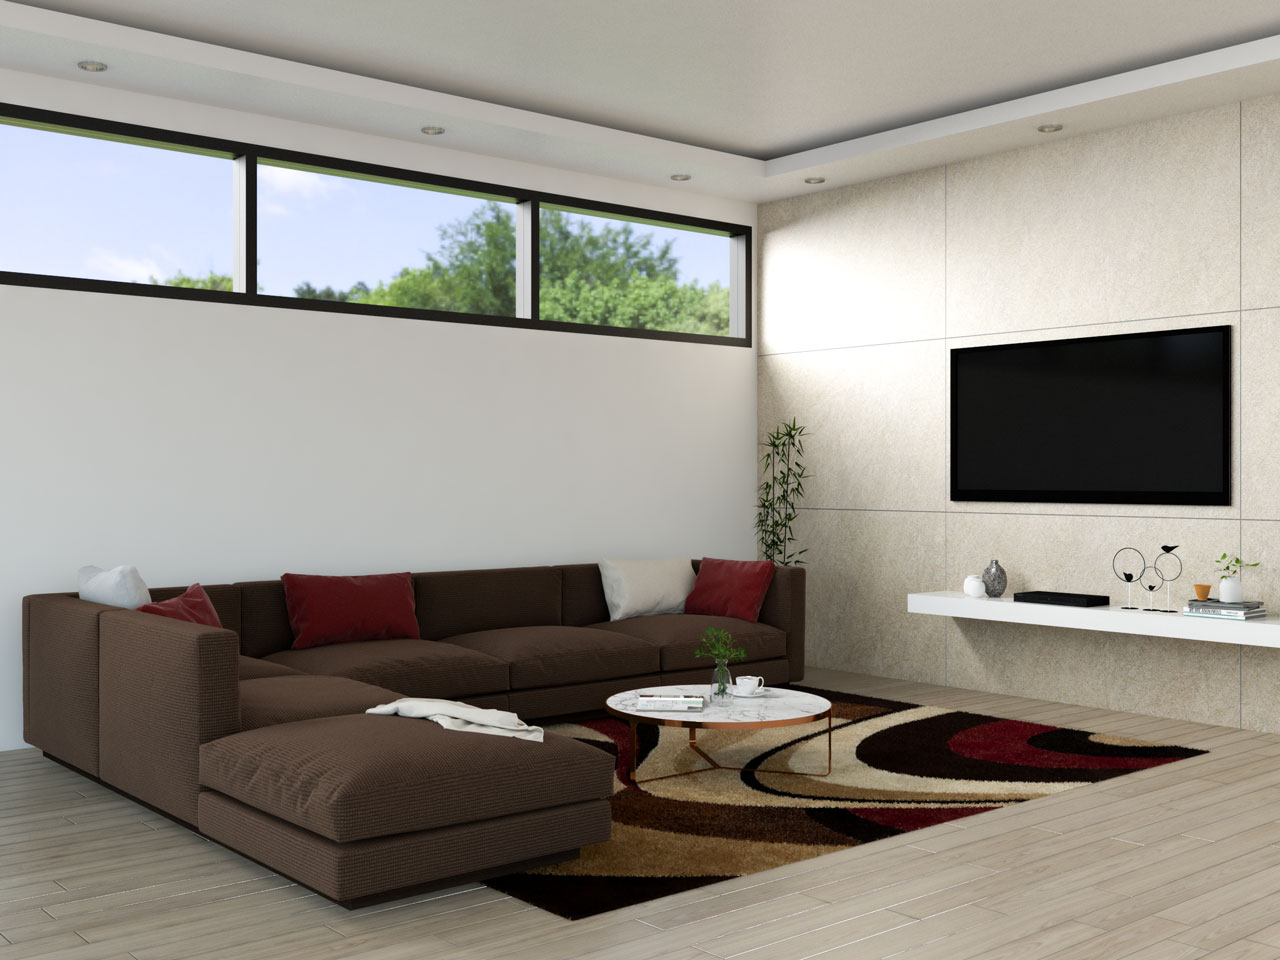 Living room with brown sofa and red accents